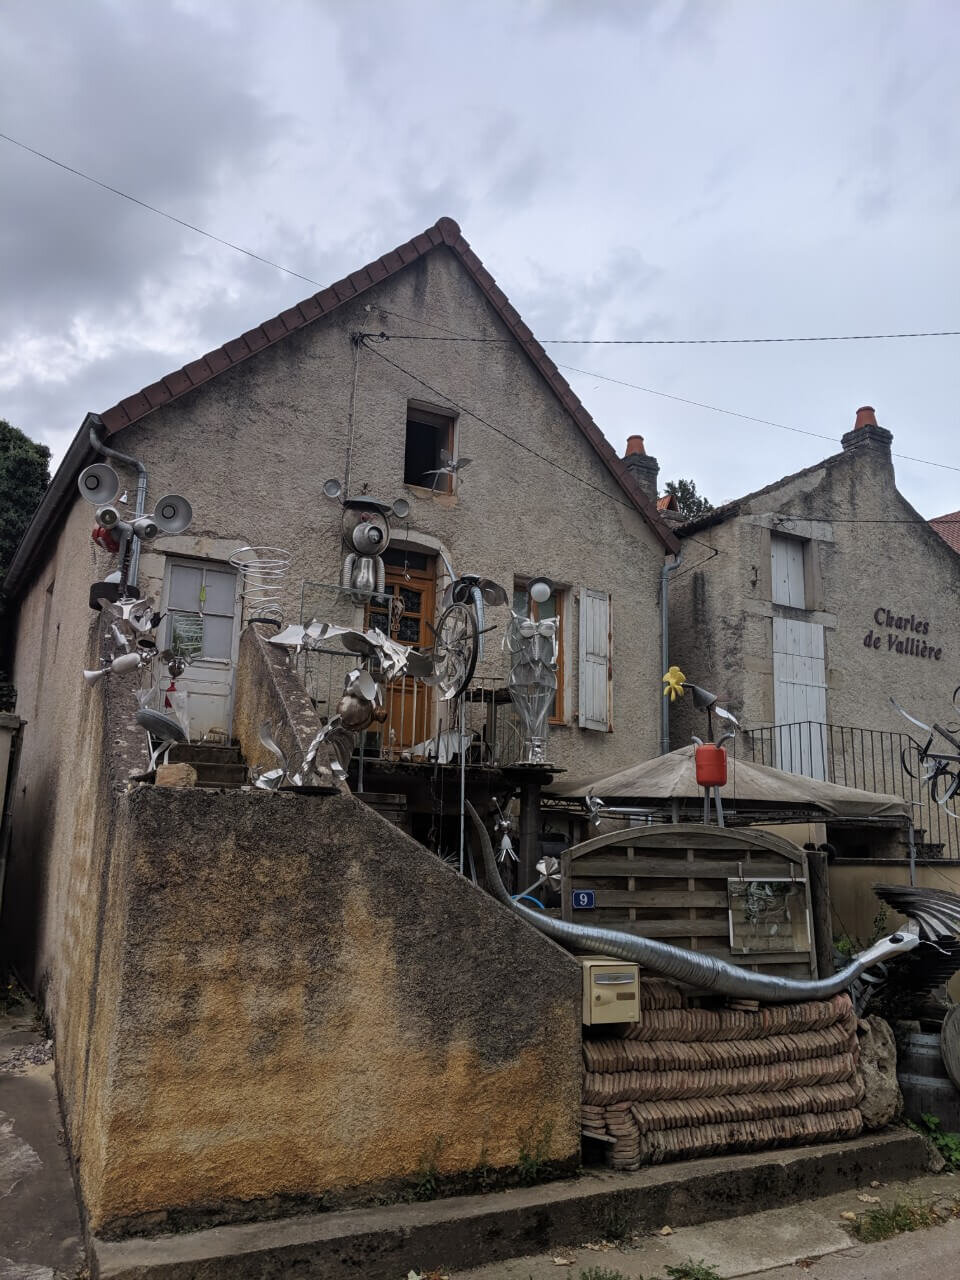 Some interesting art on our way out of town. (Pommard, France)